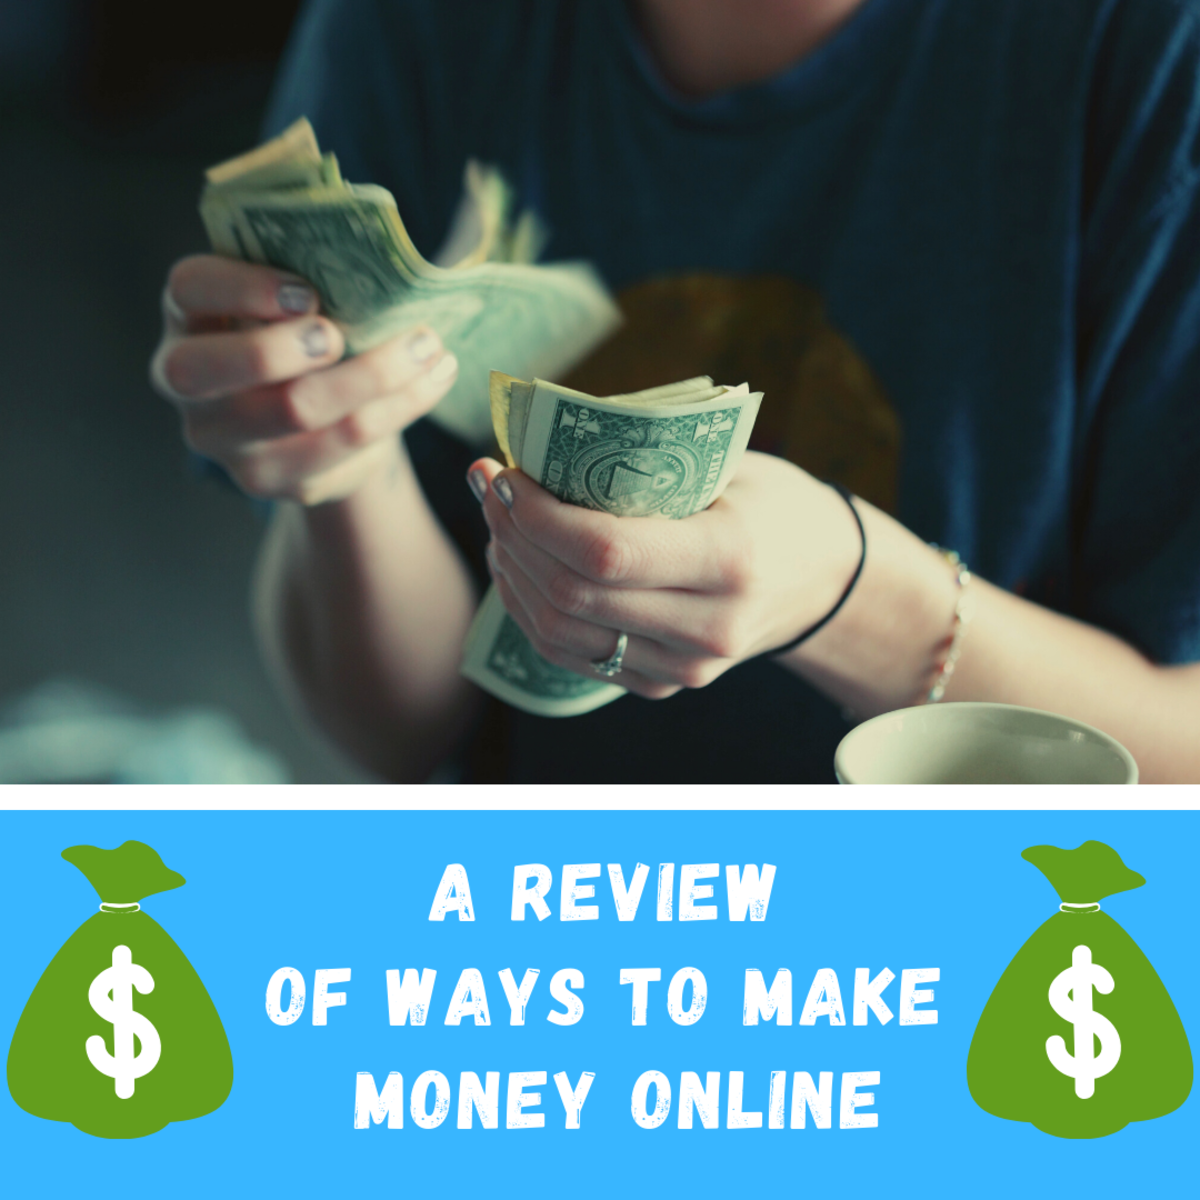 Making money online can be tricky. Read on to learn what methods will work for you.